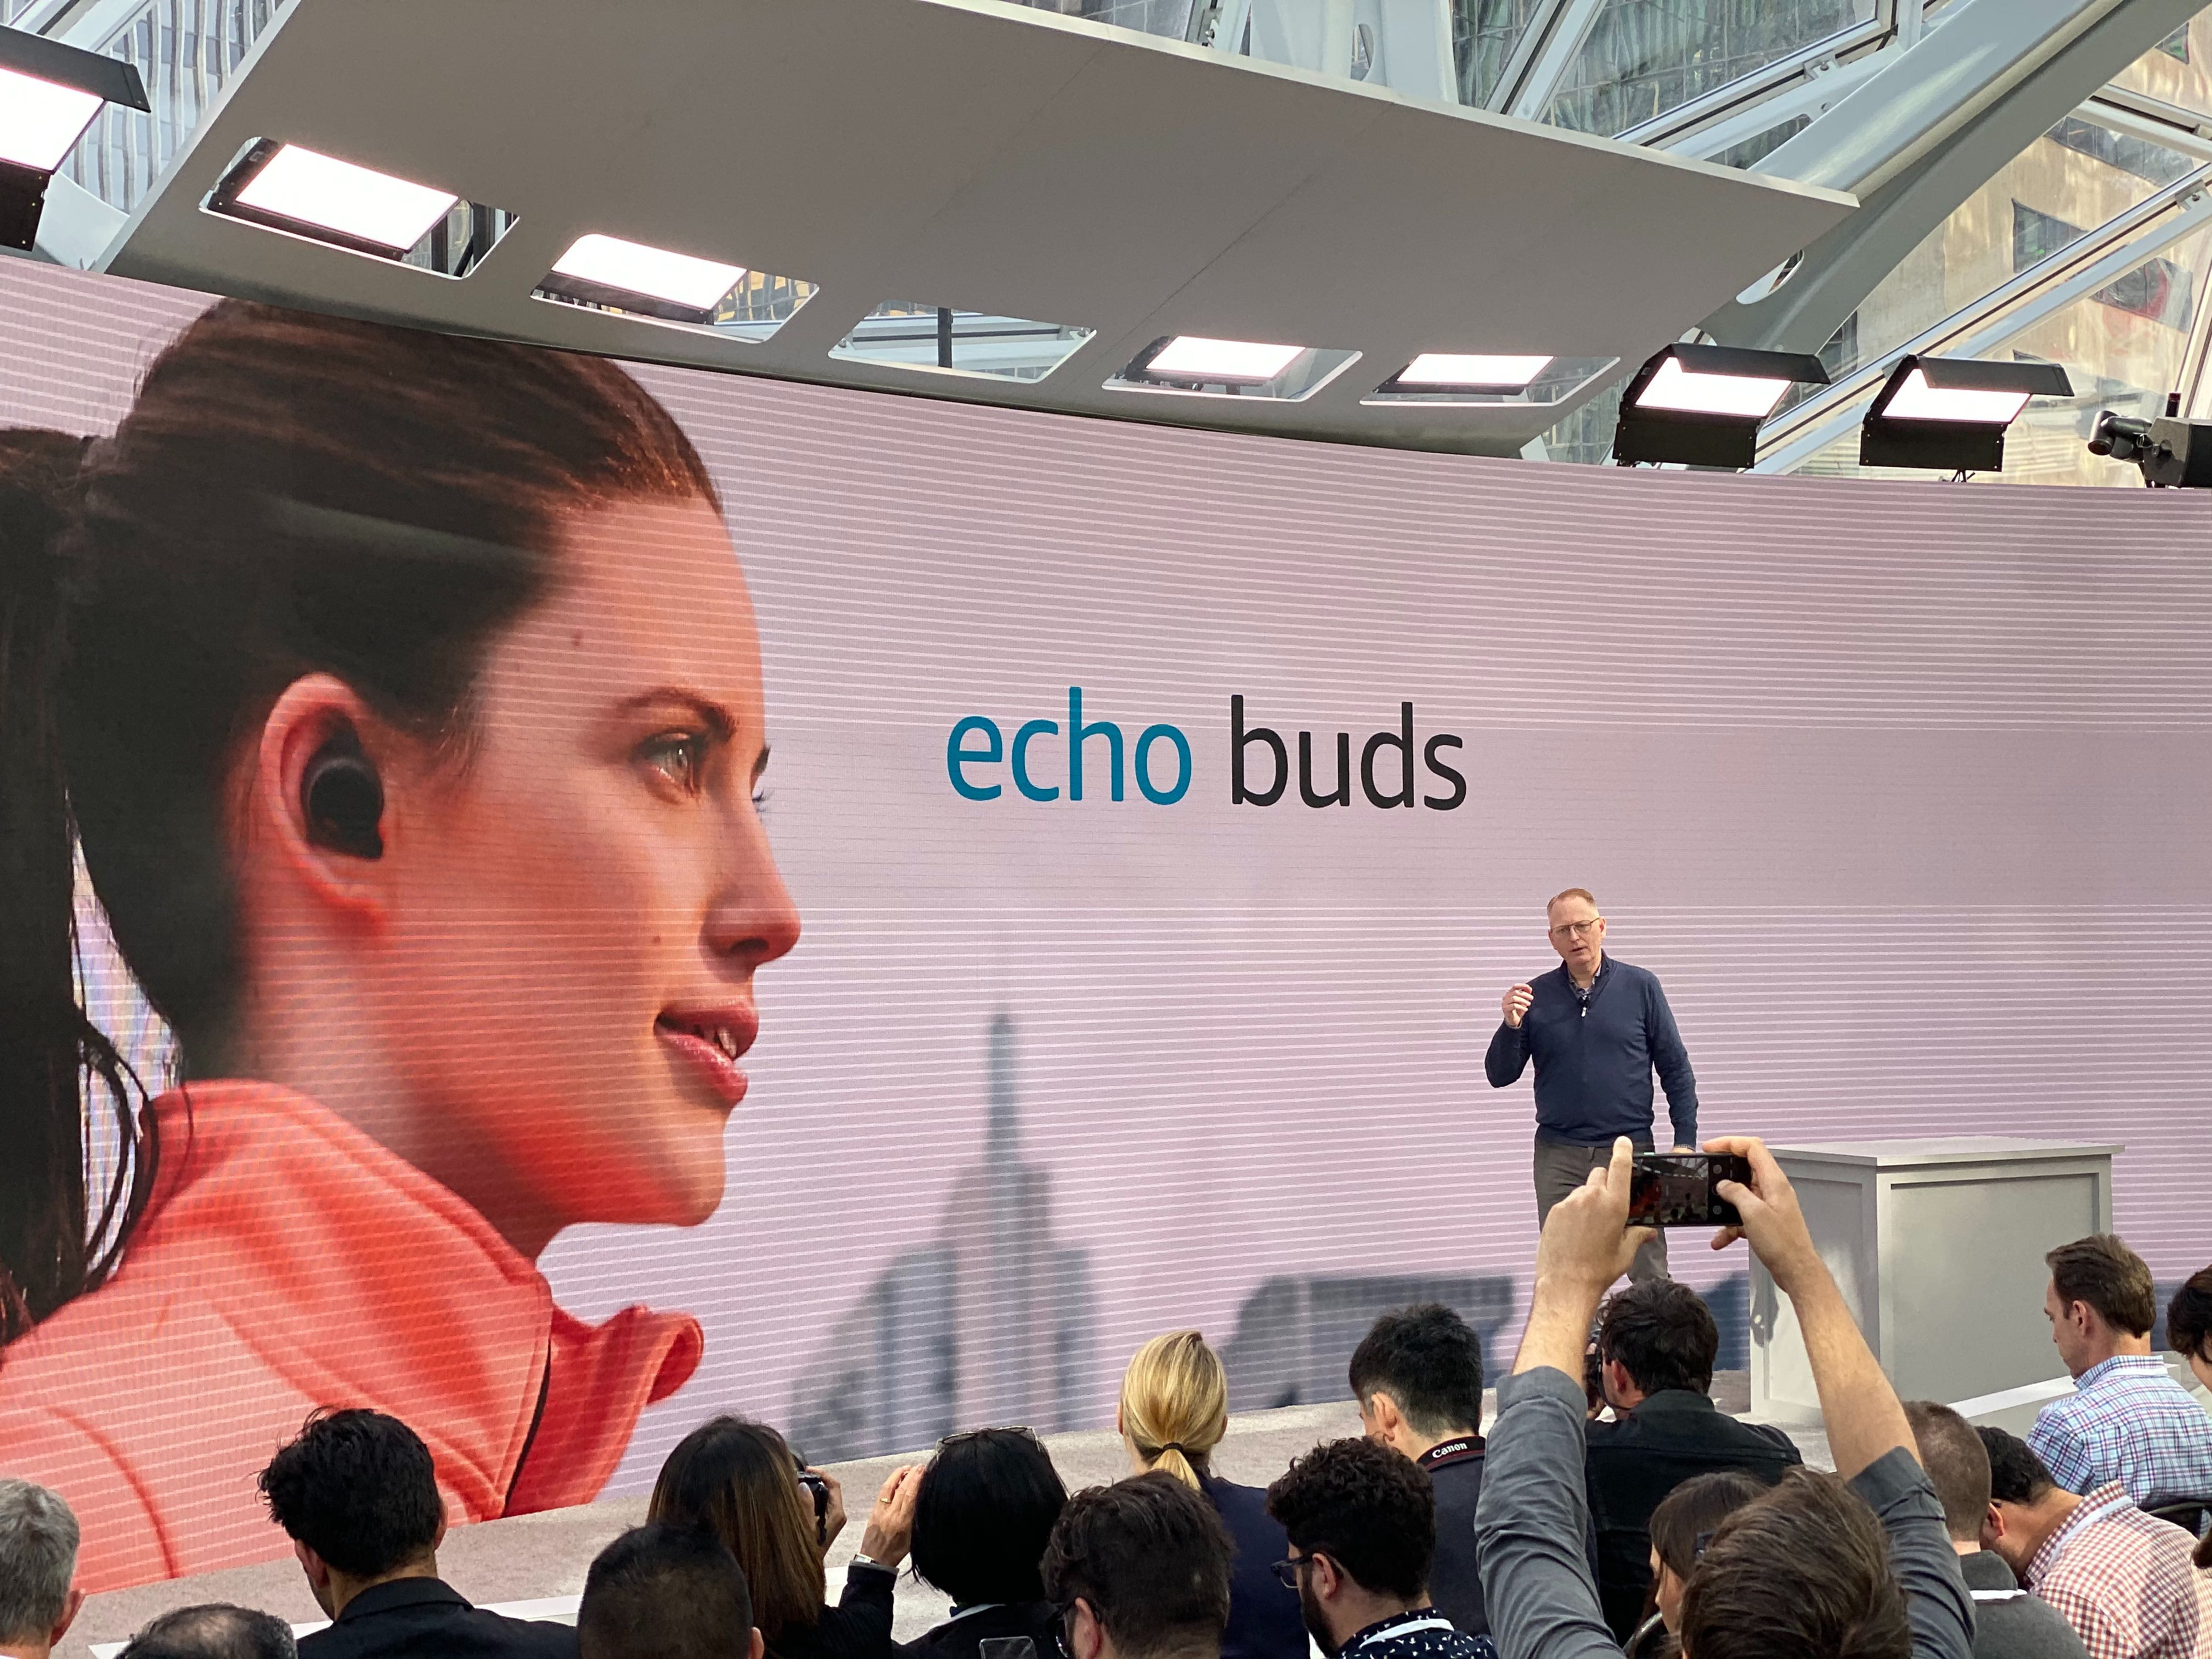 Amazon Echo Buds headphones might overheat while charging, so update the software, company warns